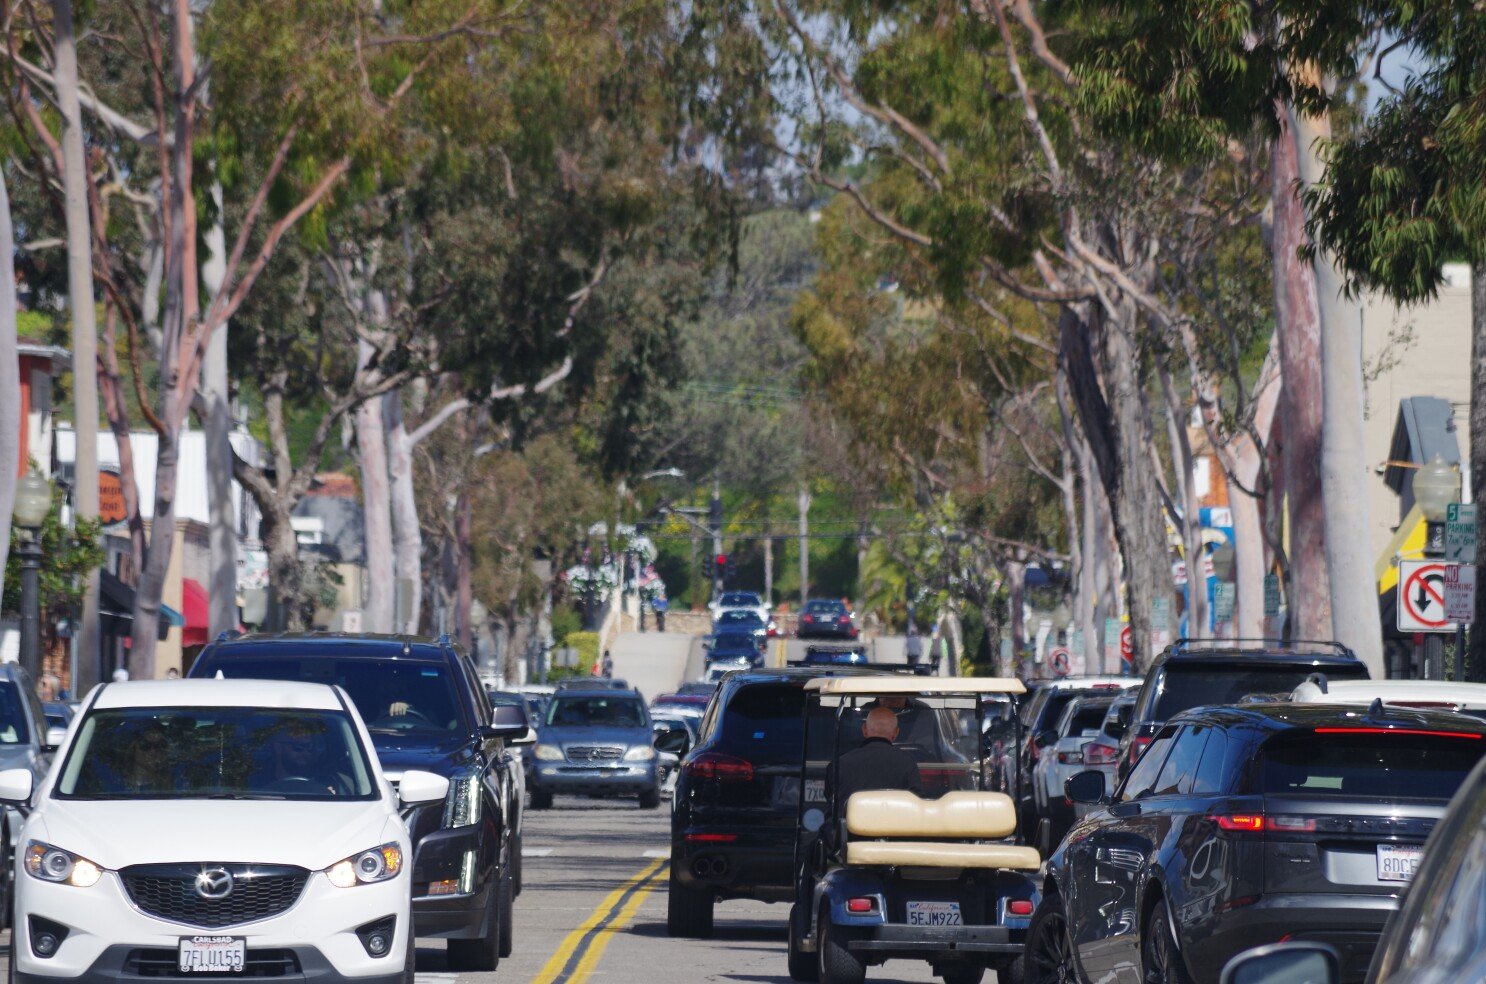 10 Balboa Island trees should be removed within a year, Newport Beach arborist says, though residents object